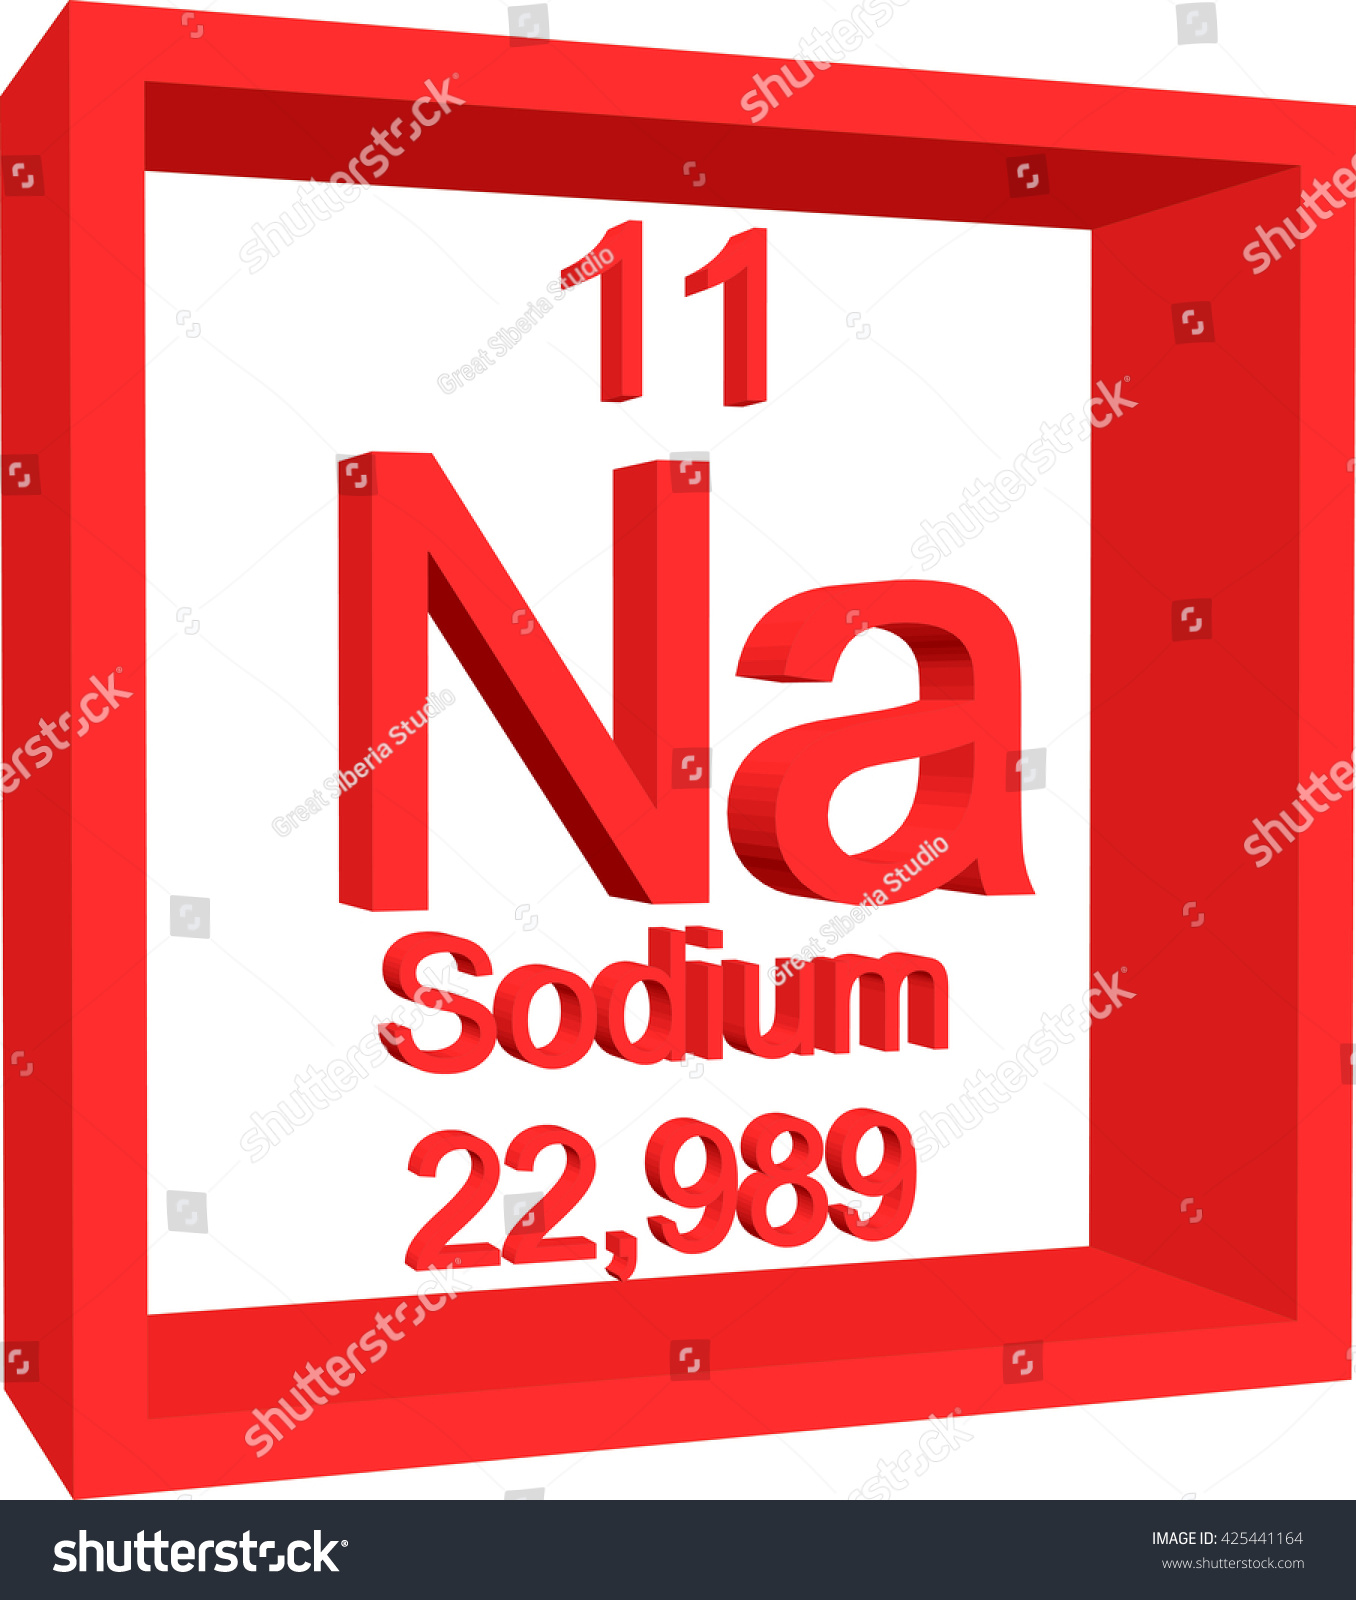 Periodic table elements sodium stock vector 425441164 shutterstock periodic table of elements sodium gamestrikefo Images